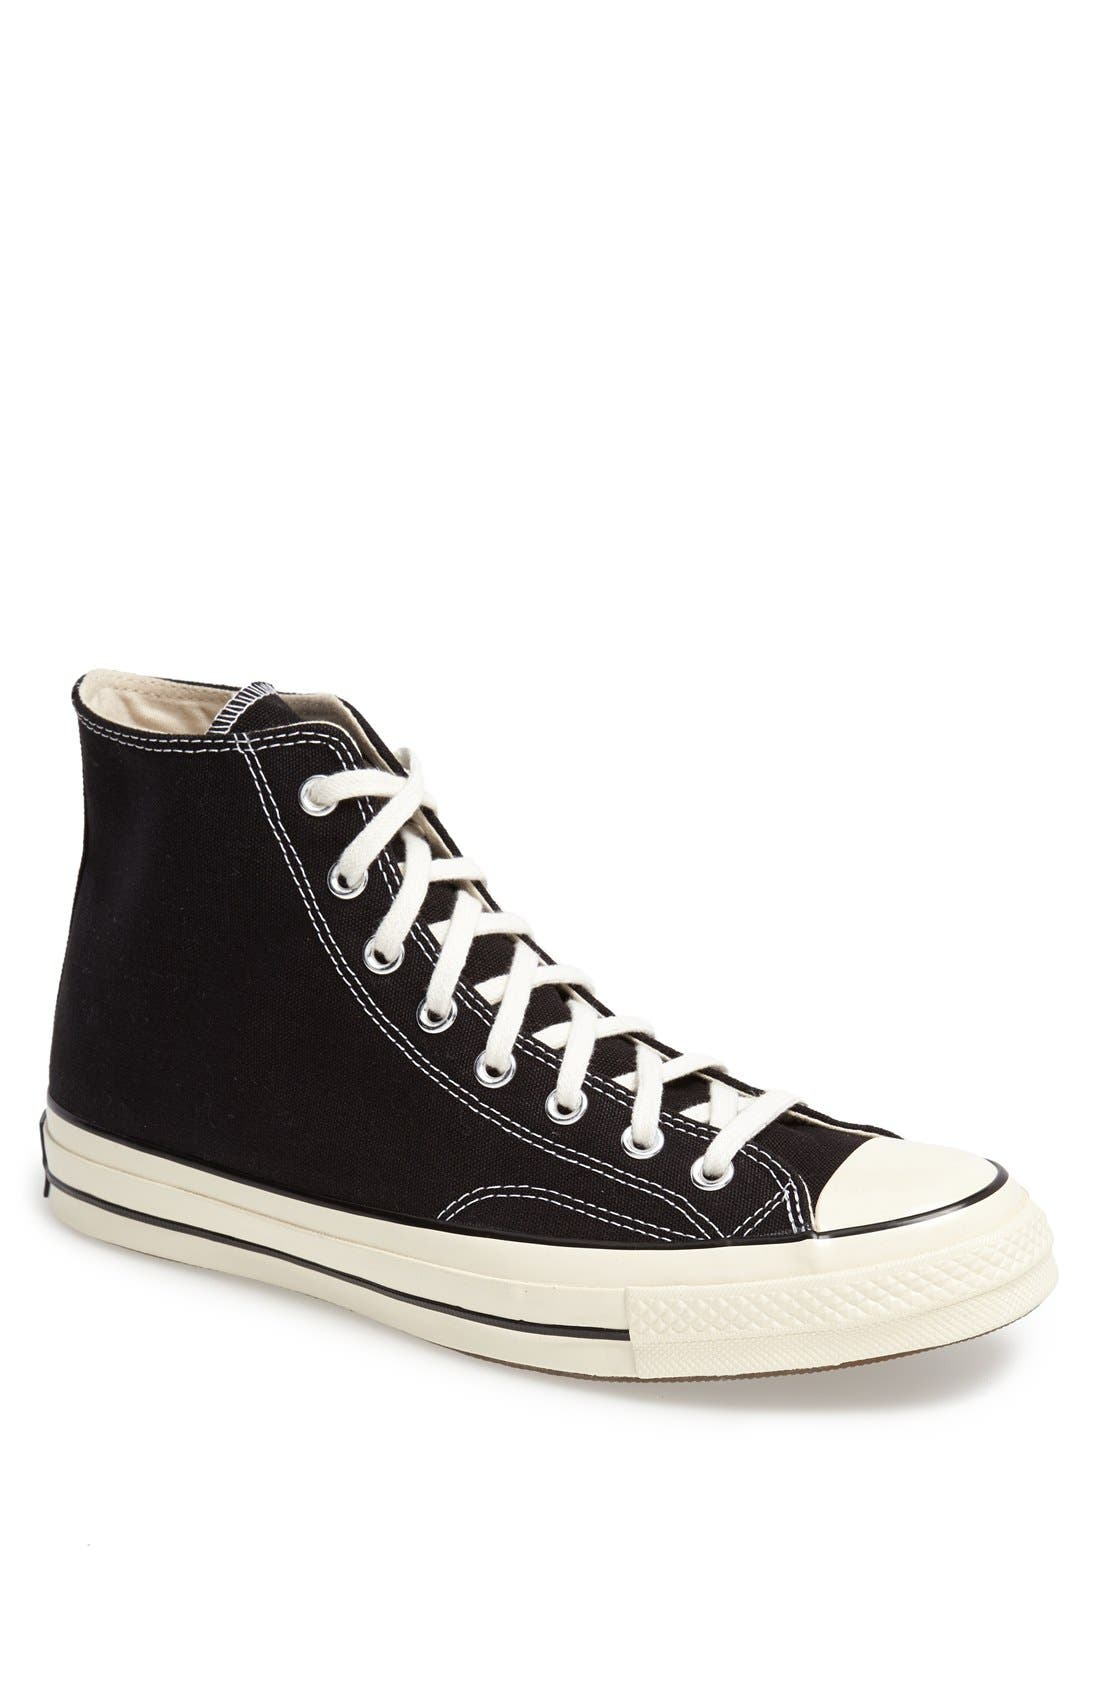 Chuck Taylor<sup>®</sup> All Star<sup>®</sup> '70 High Sneaker,                             Main thumbnail 1, color,                             001